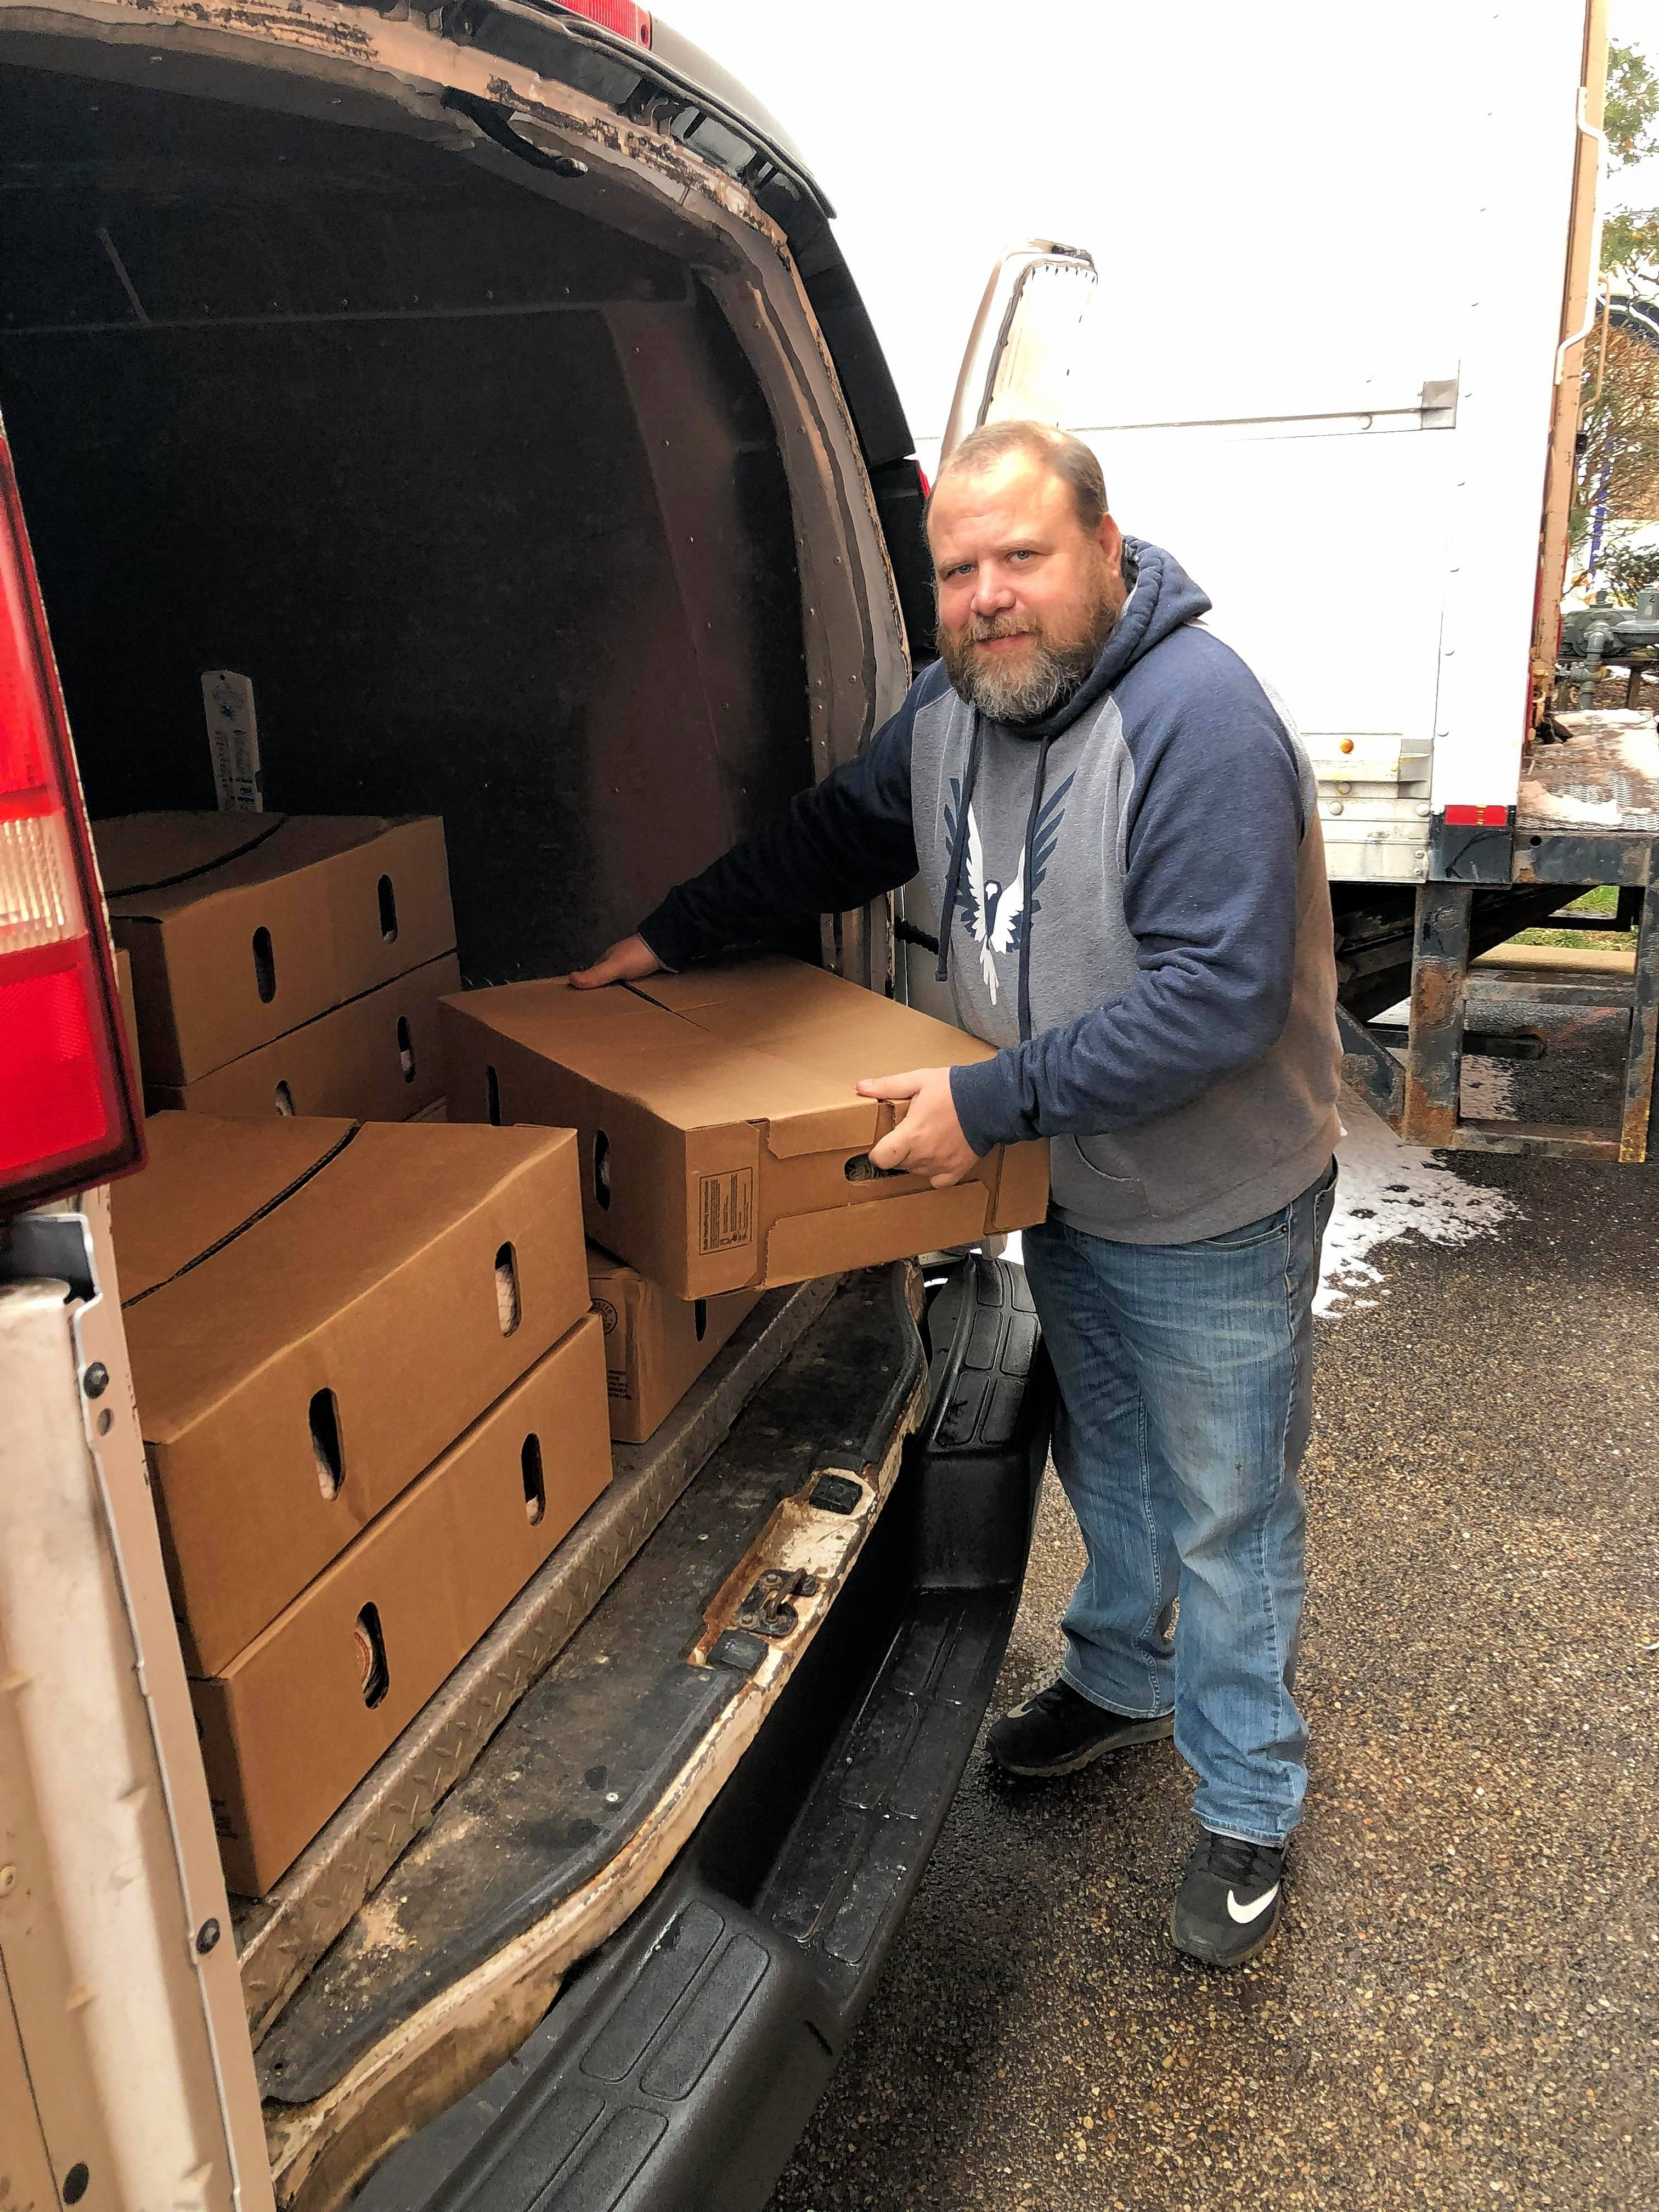 Jeff Turner dropped off 100 turkeys Thursday at Grand Victoria Casino in Elgin. The staff will cook them and carve them for the annual free Thanksgiving dinner next week.